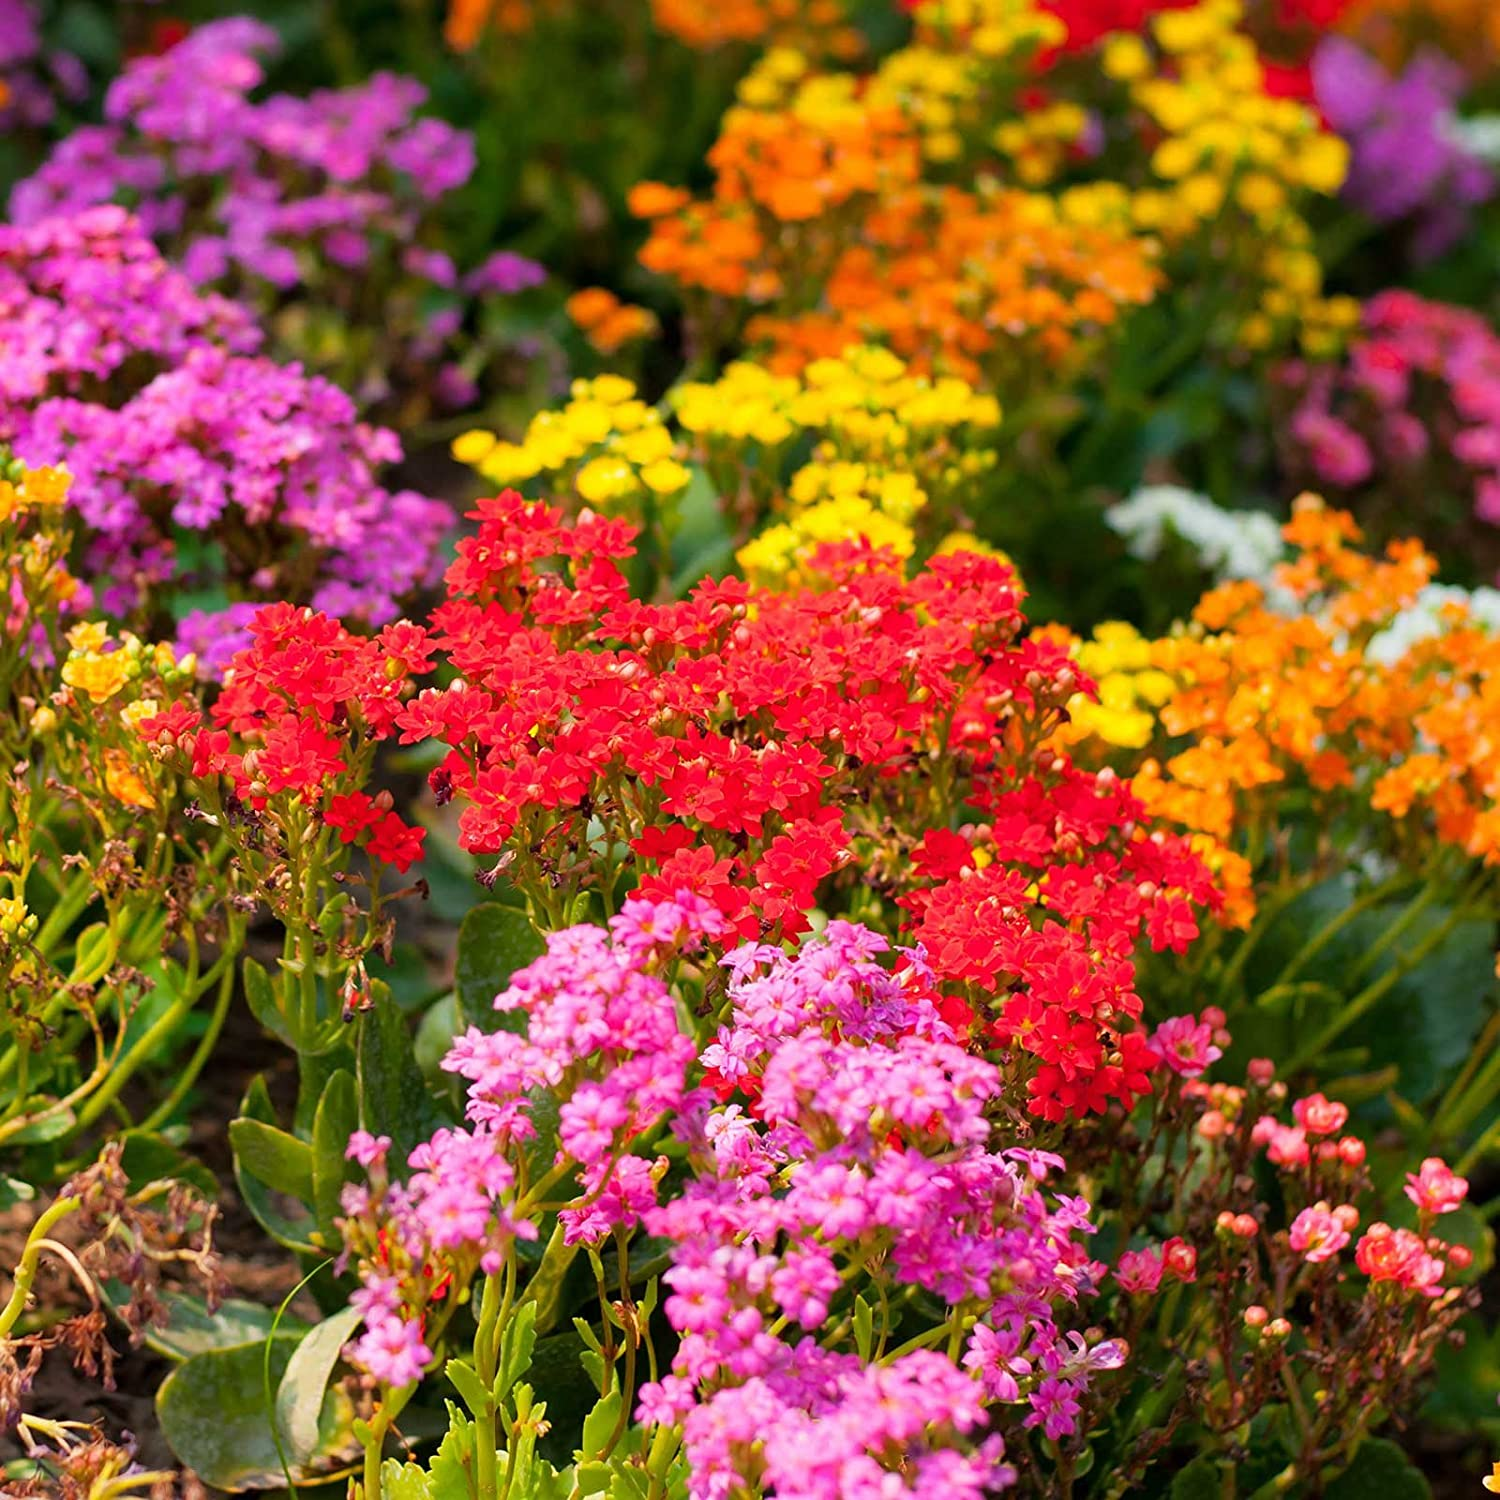 Alyssum Wonderland Series Flower Garden Seeds: Color Mix - Approx 5000 Seeds - Annual - Lobularia maritima